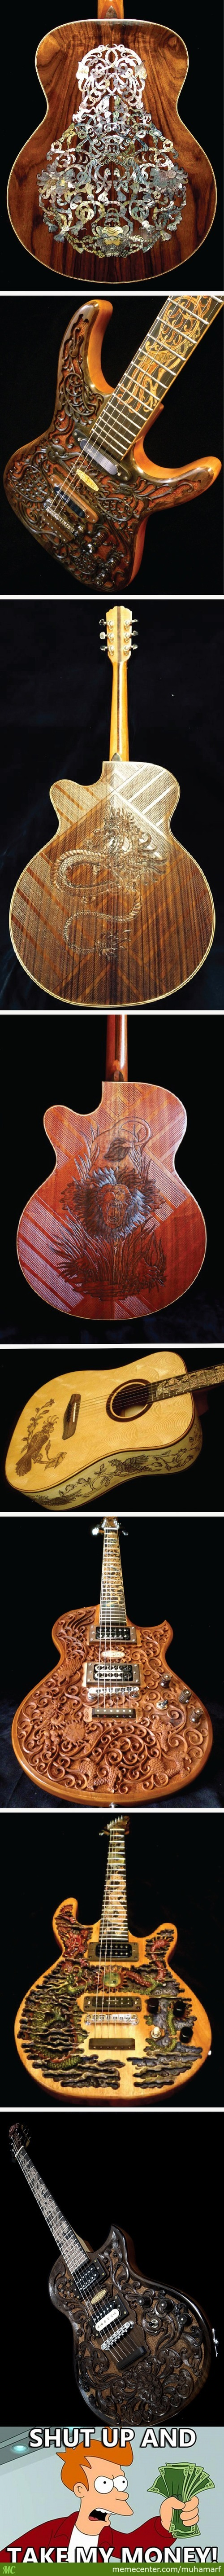 Guitar Made By Wayan Tuges